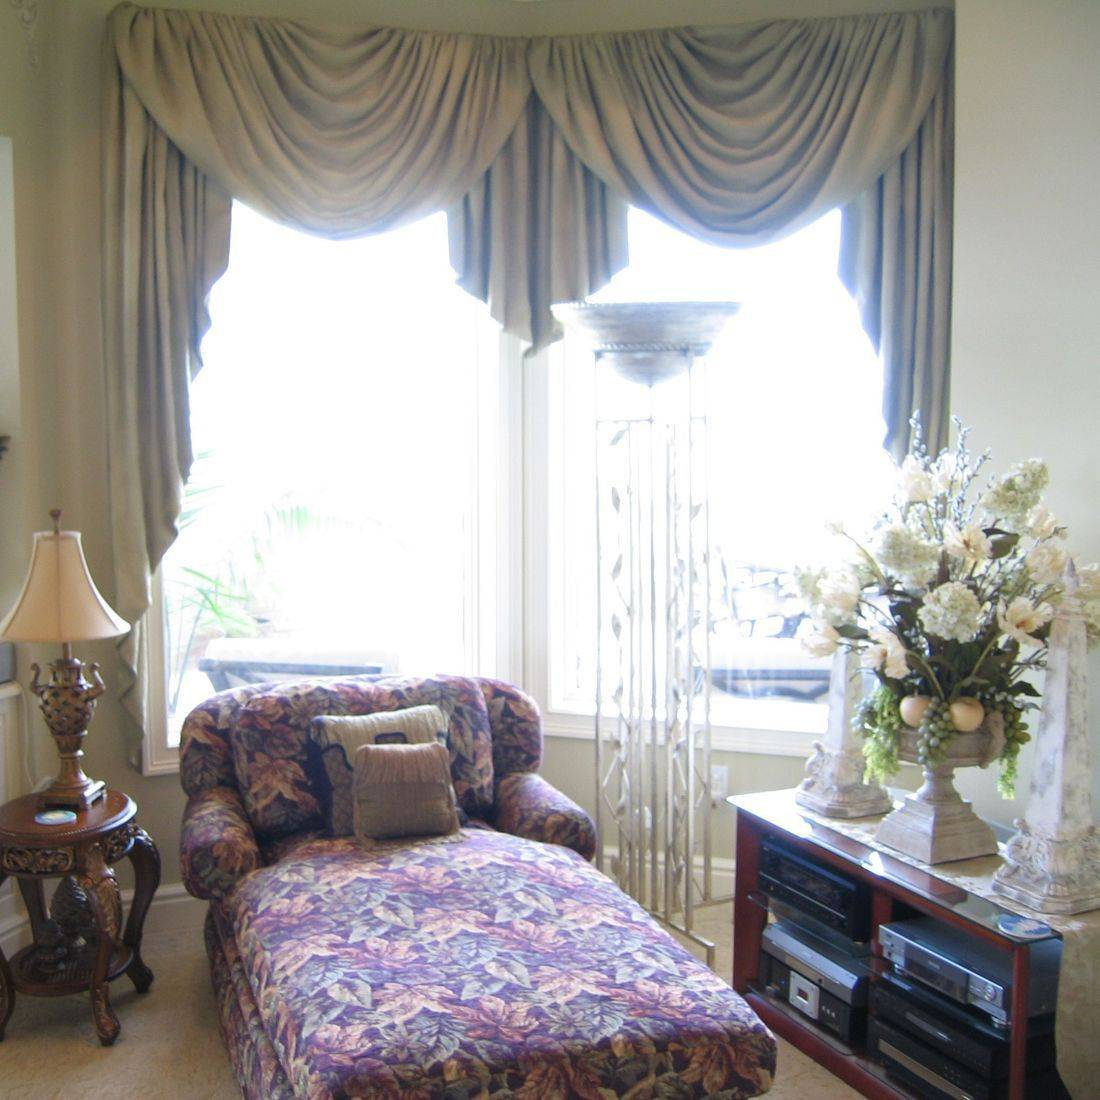 Budget blinds,  motorize shades, Draperies